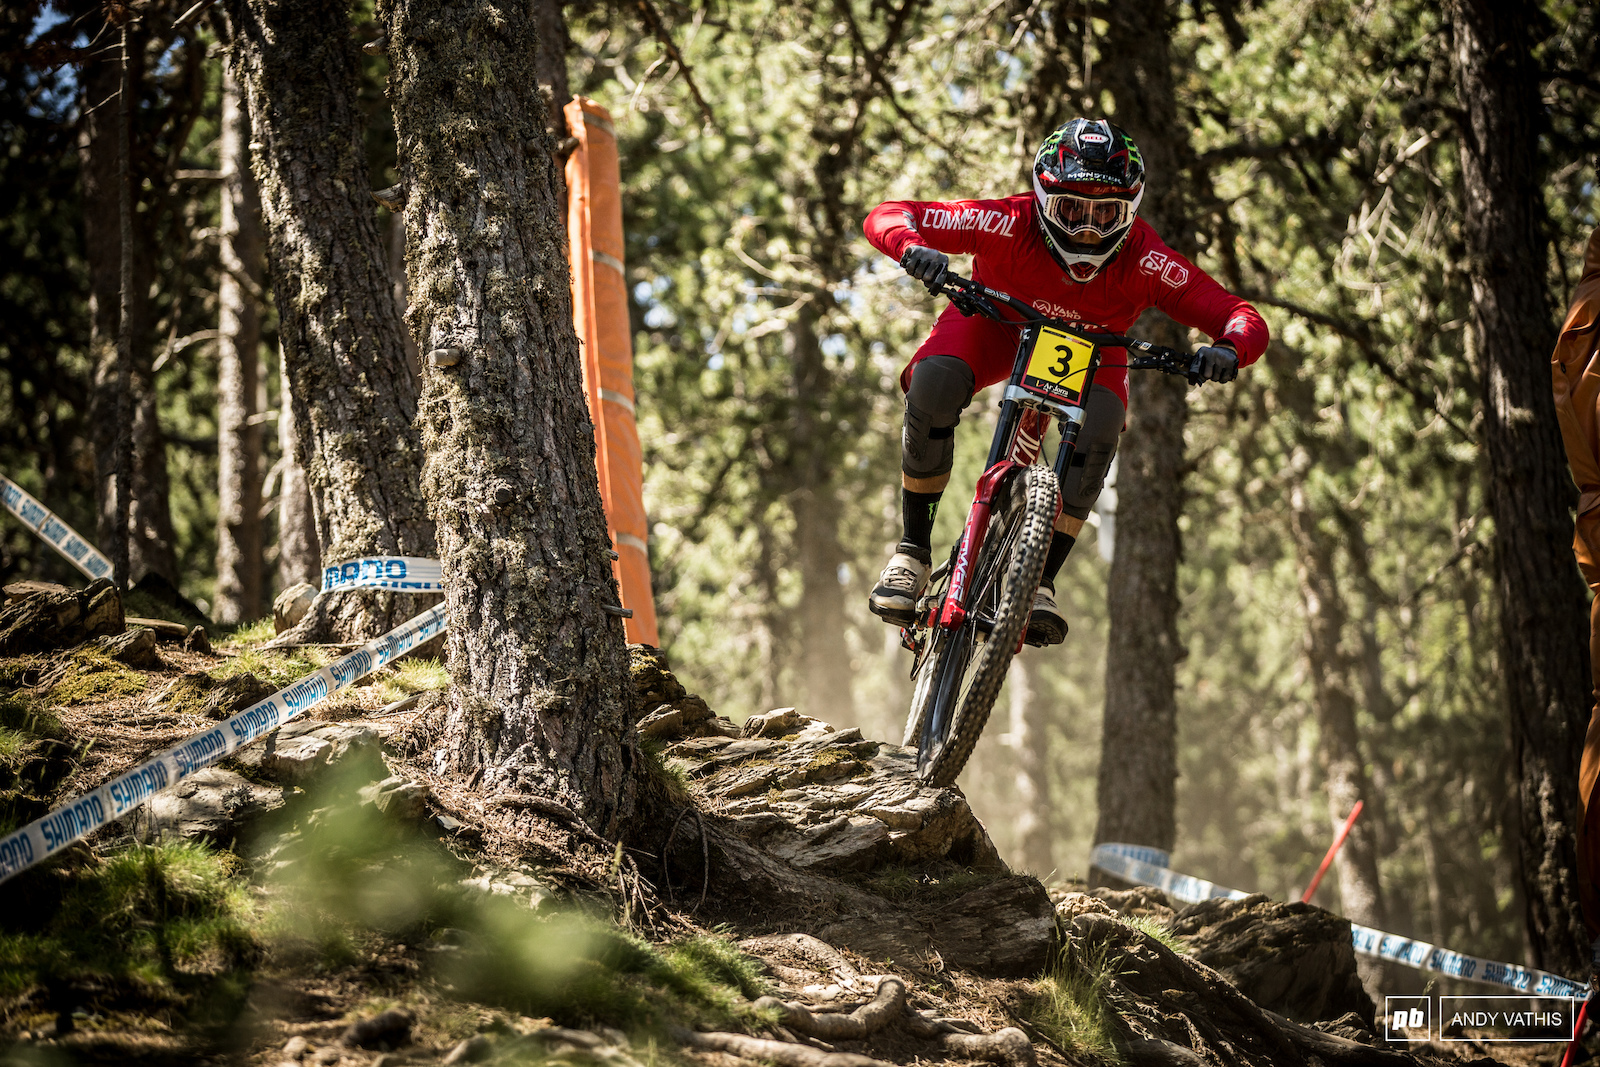 Amaury couldn t quite get the win for Commencal on home turf here last year. Let s see how this weekend plays out. It s anyone s game.